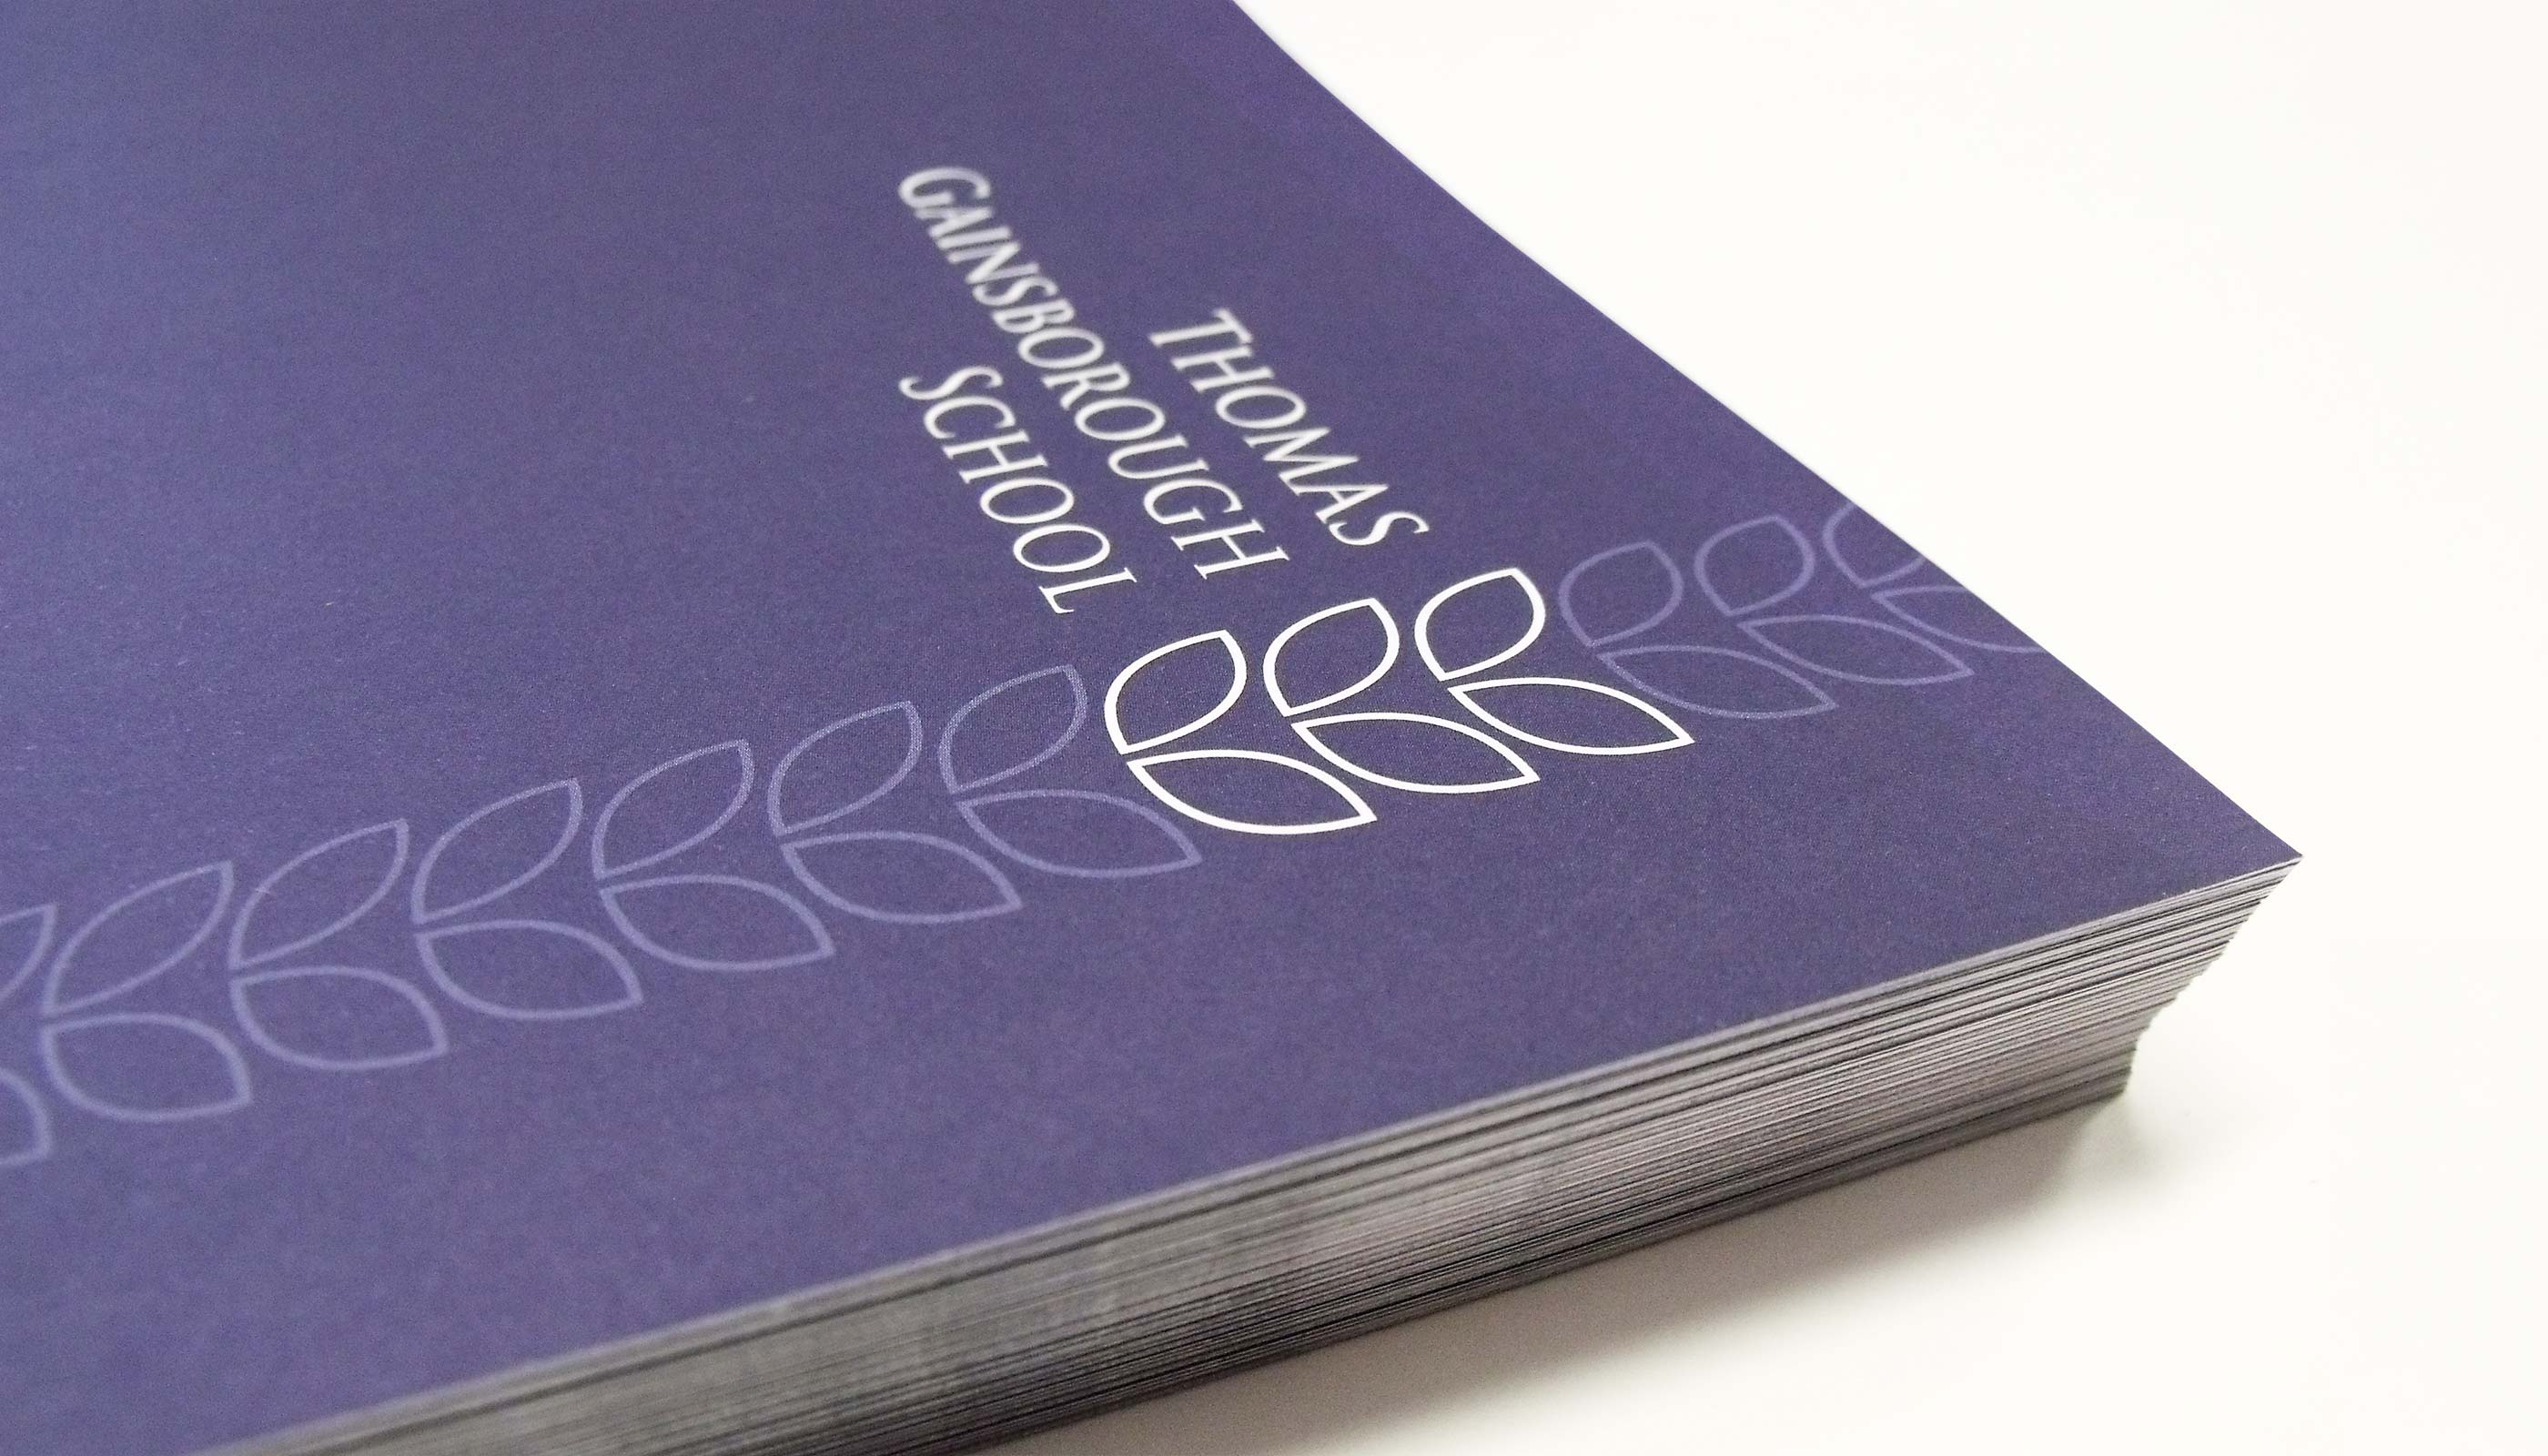 School prospectus design created for Thomas Gainsborough School in Sudbury, Suffolk.